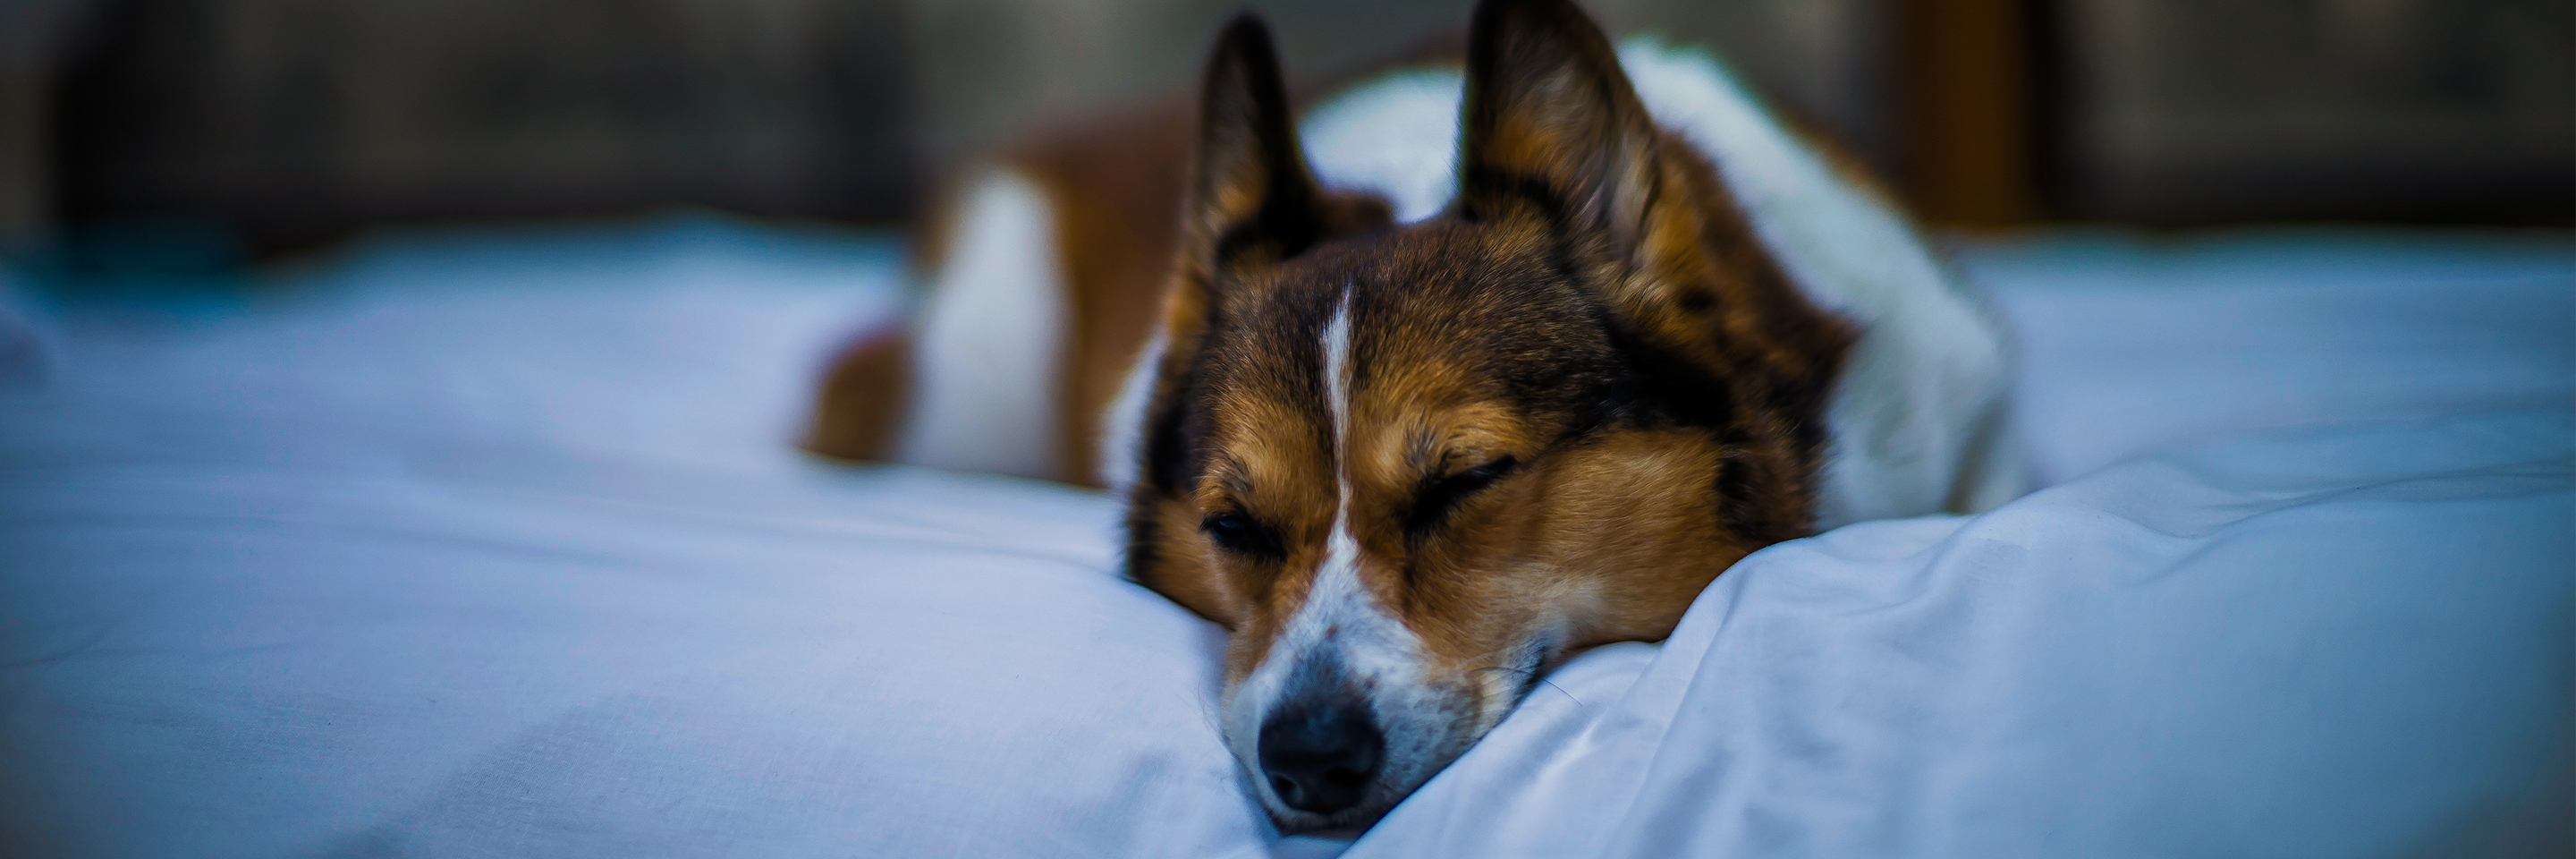 Corgi dog sleeping on a pet-friendly hotel bed.